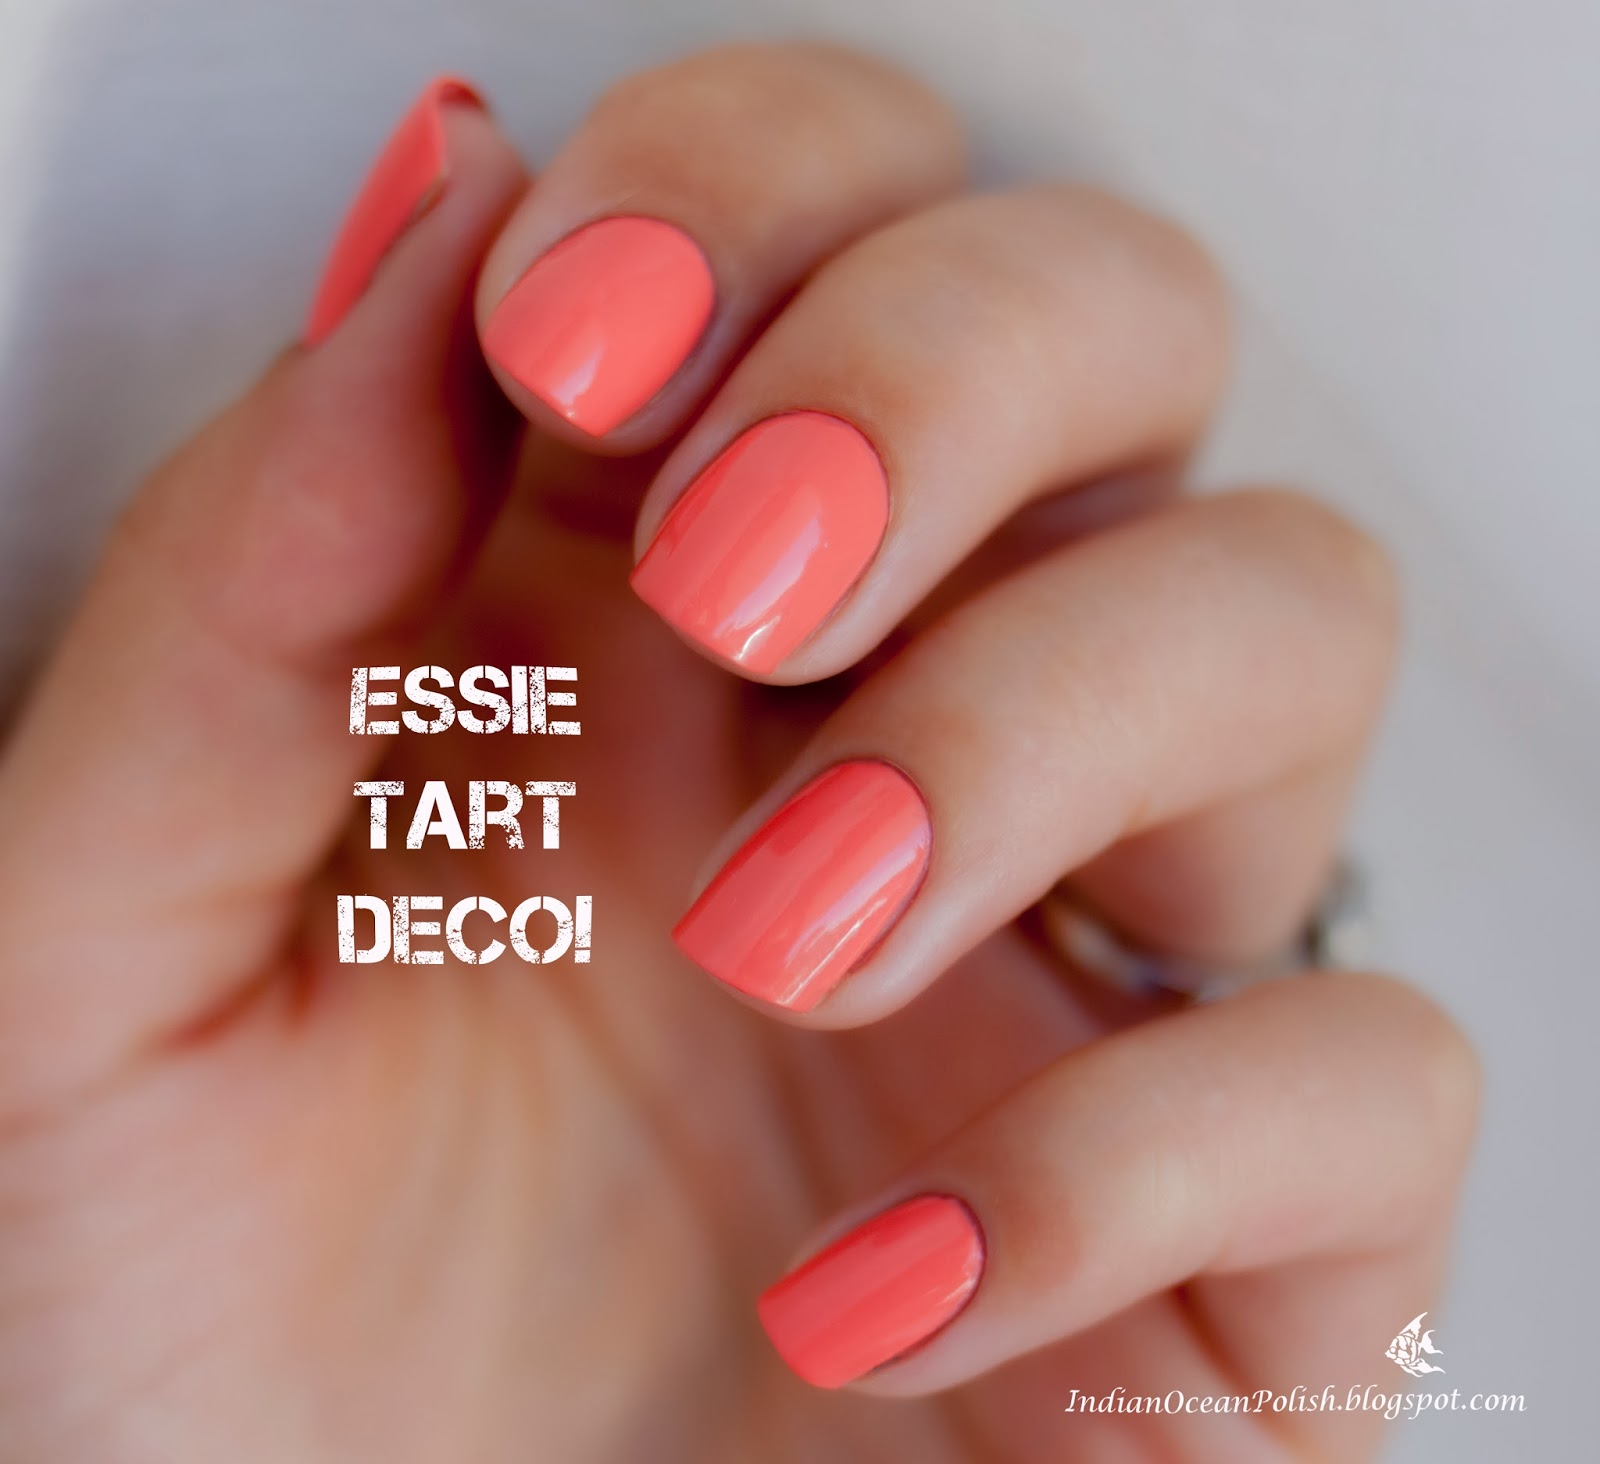 Pastel Orange Nail Polish Essie: Indian Ocean Polish: Dandelions At Sunset :